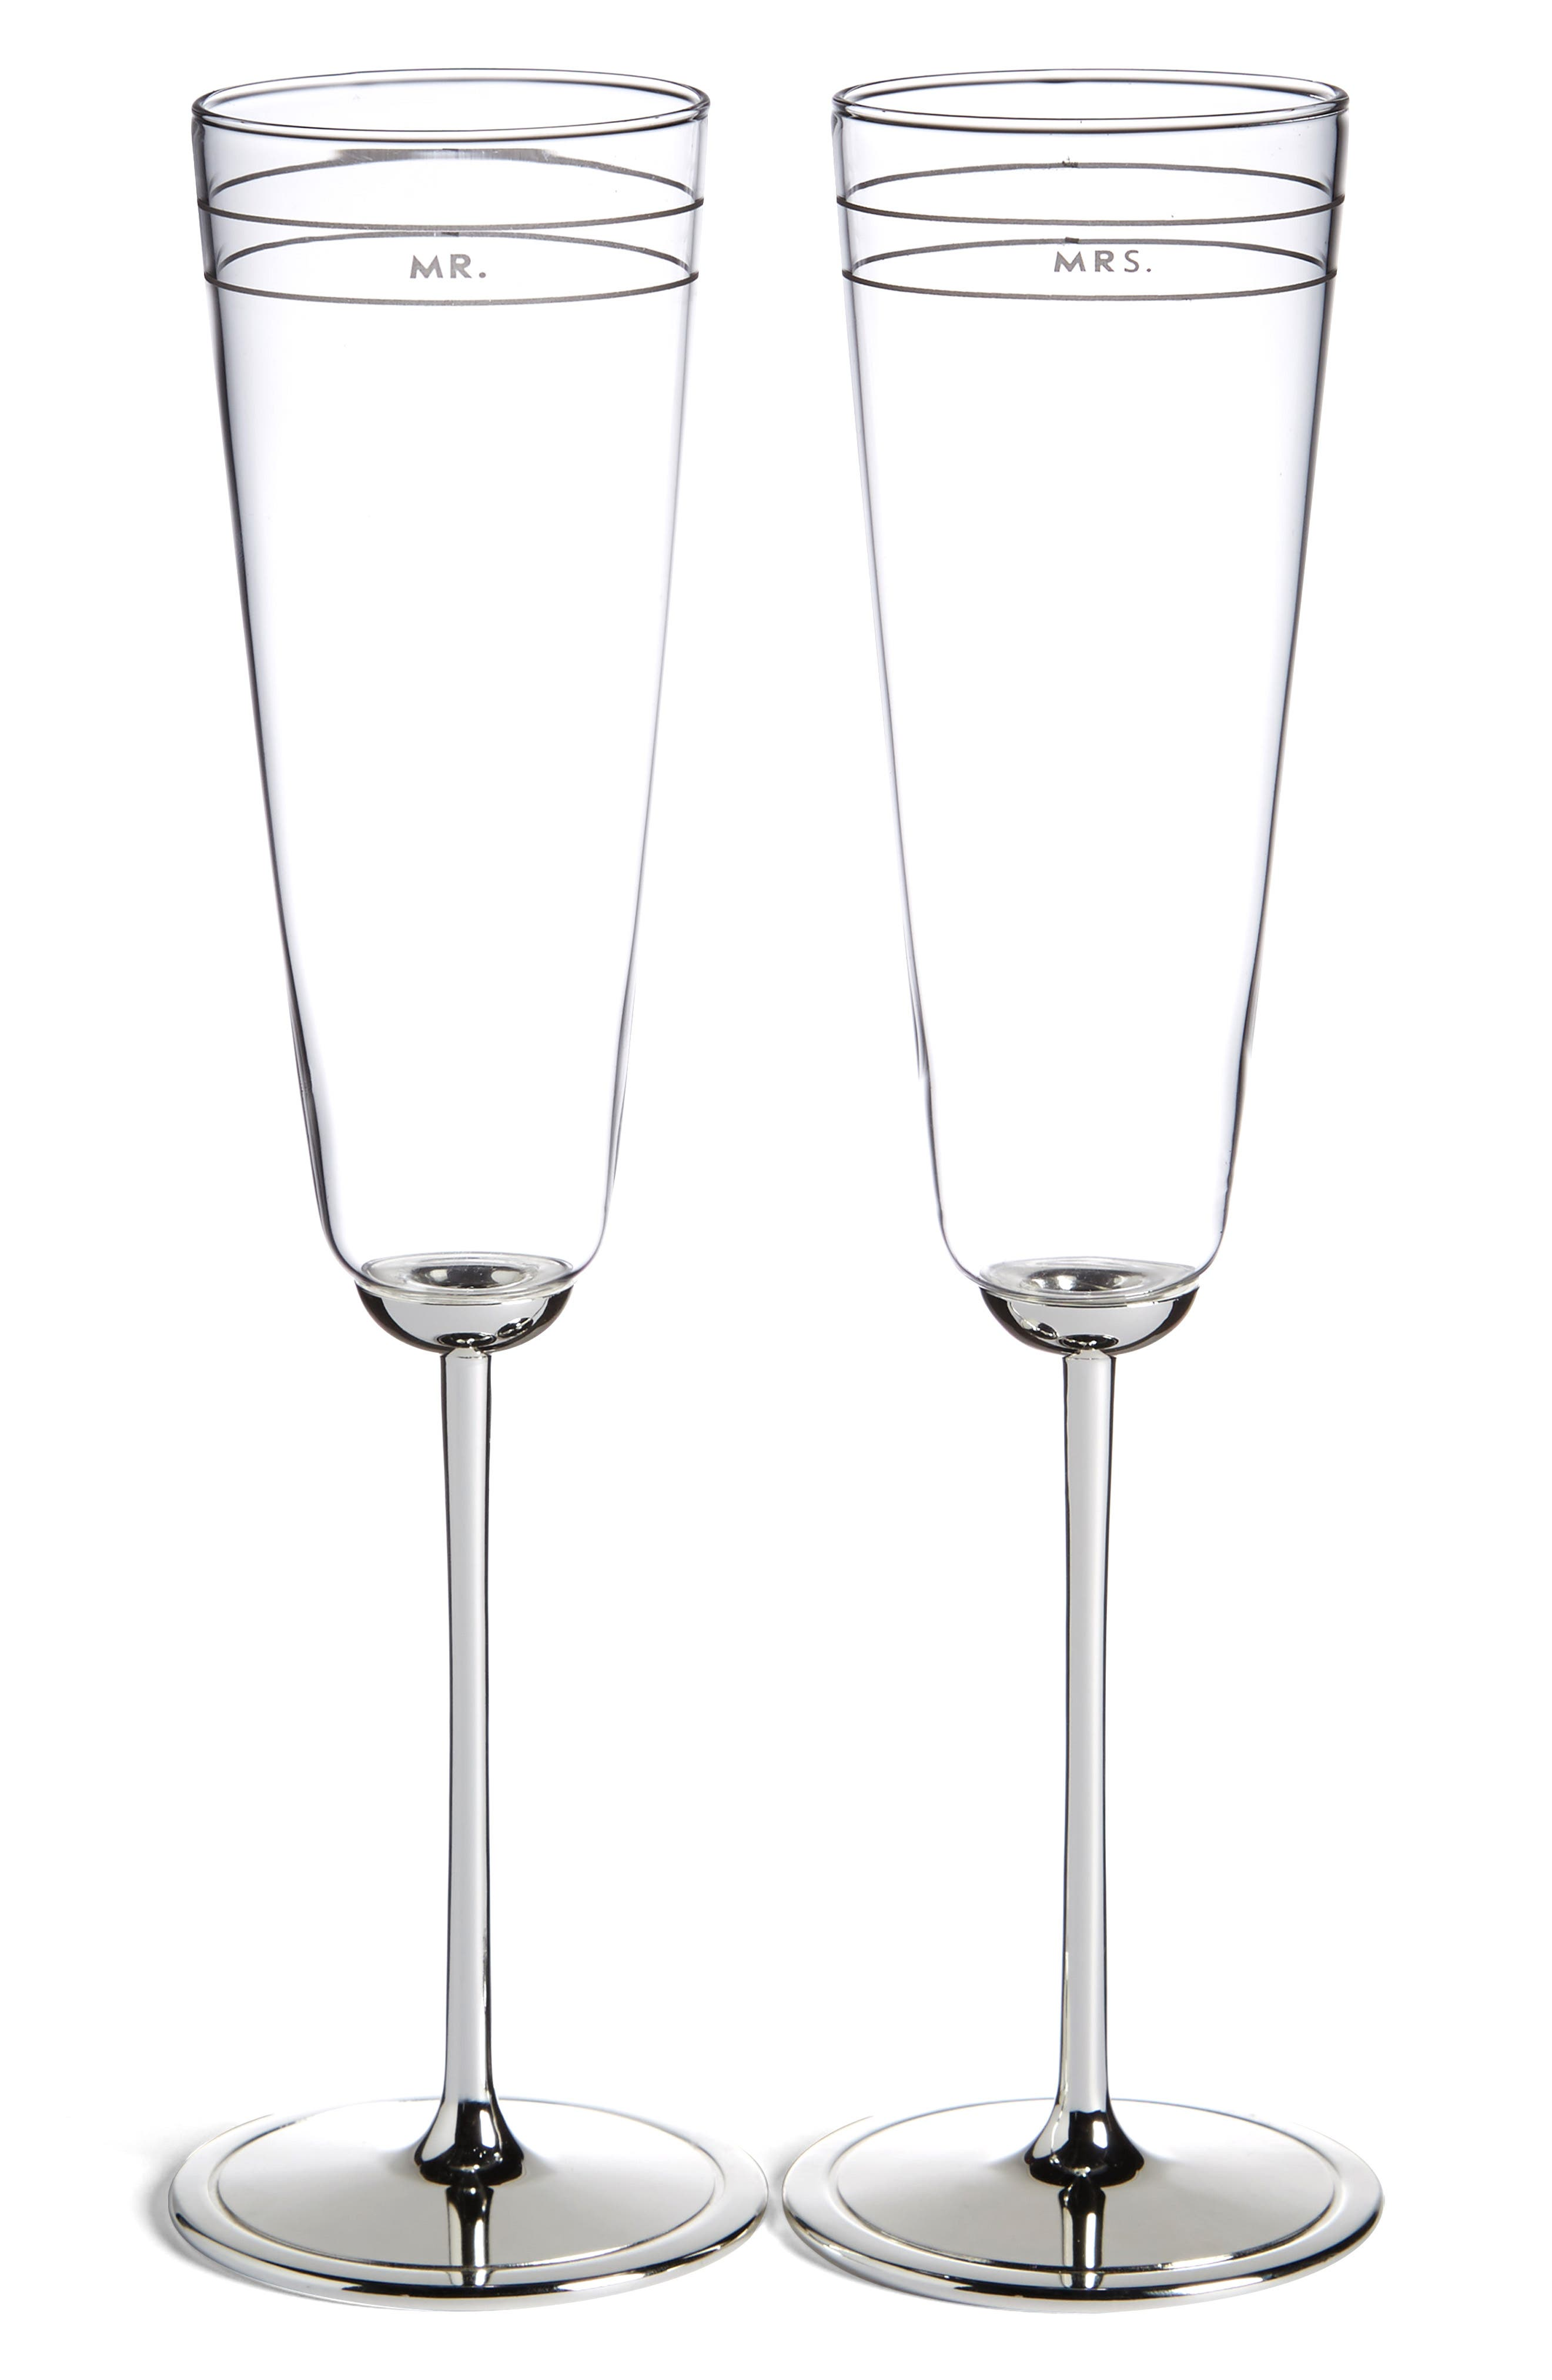 kate spade new york 'darling point' champagne flutes (Set of 2)